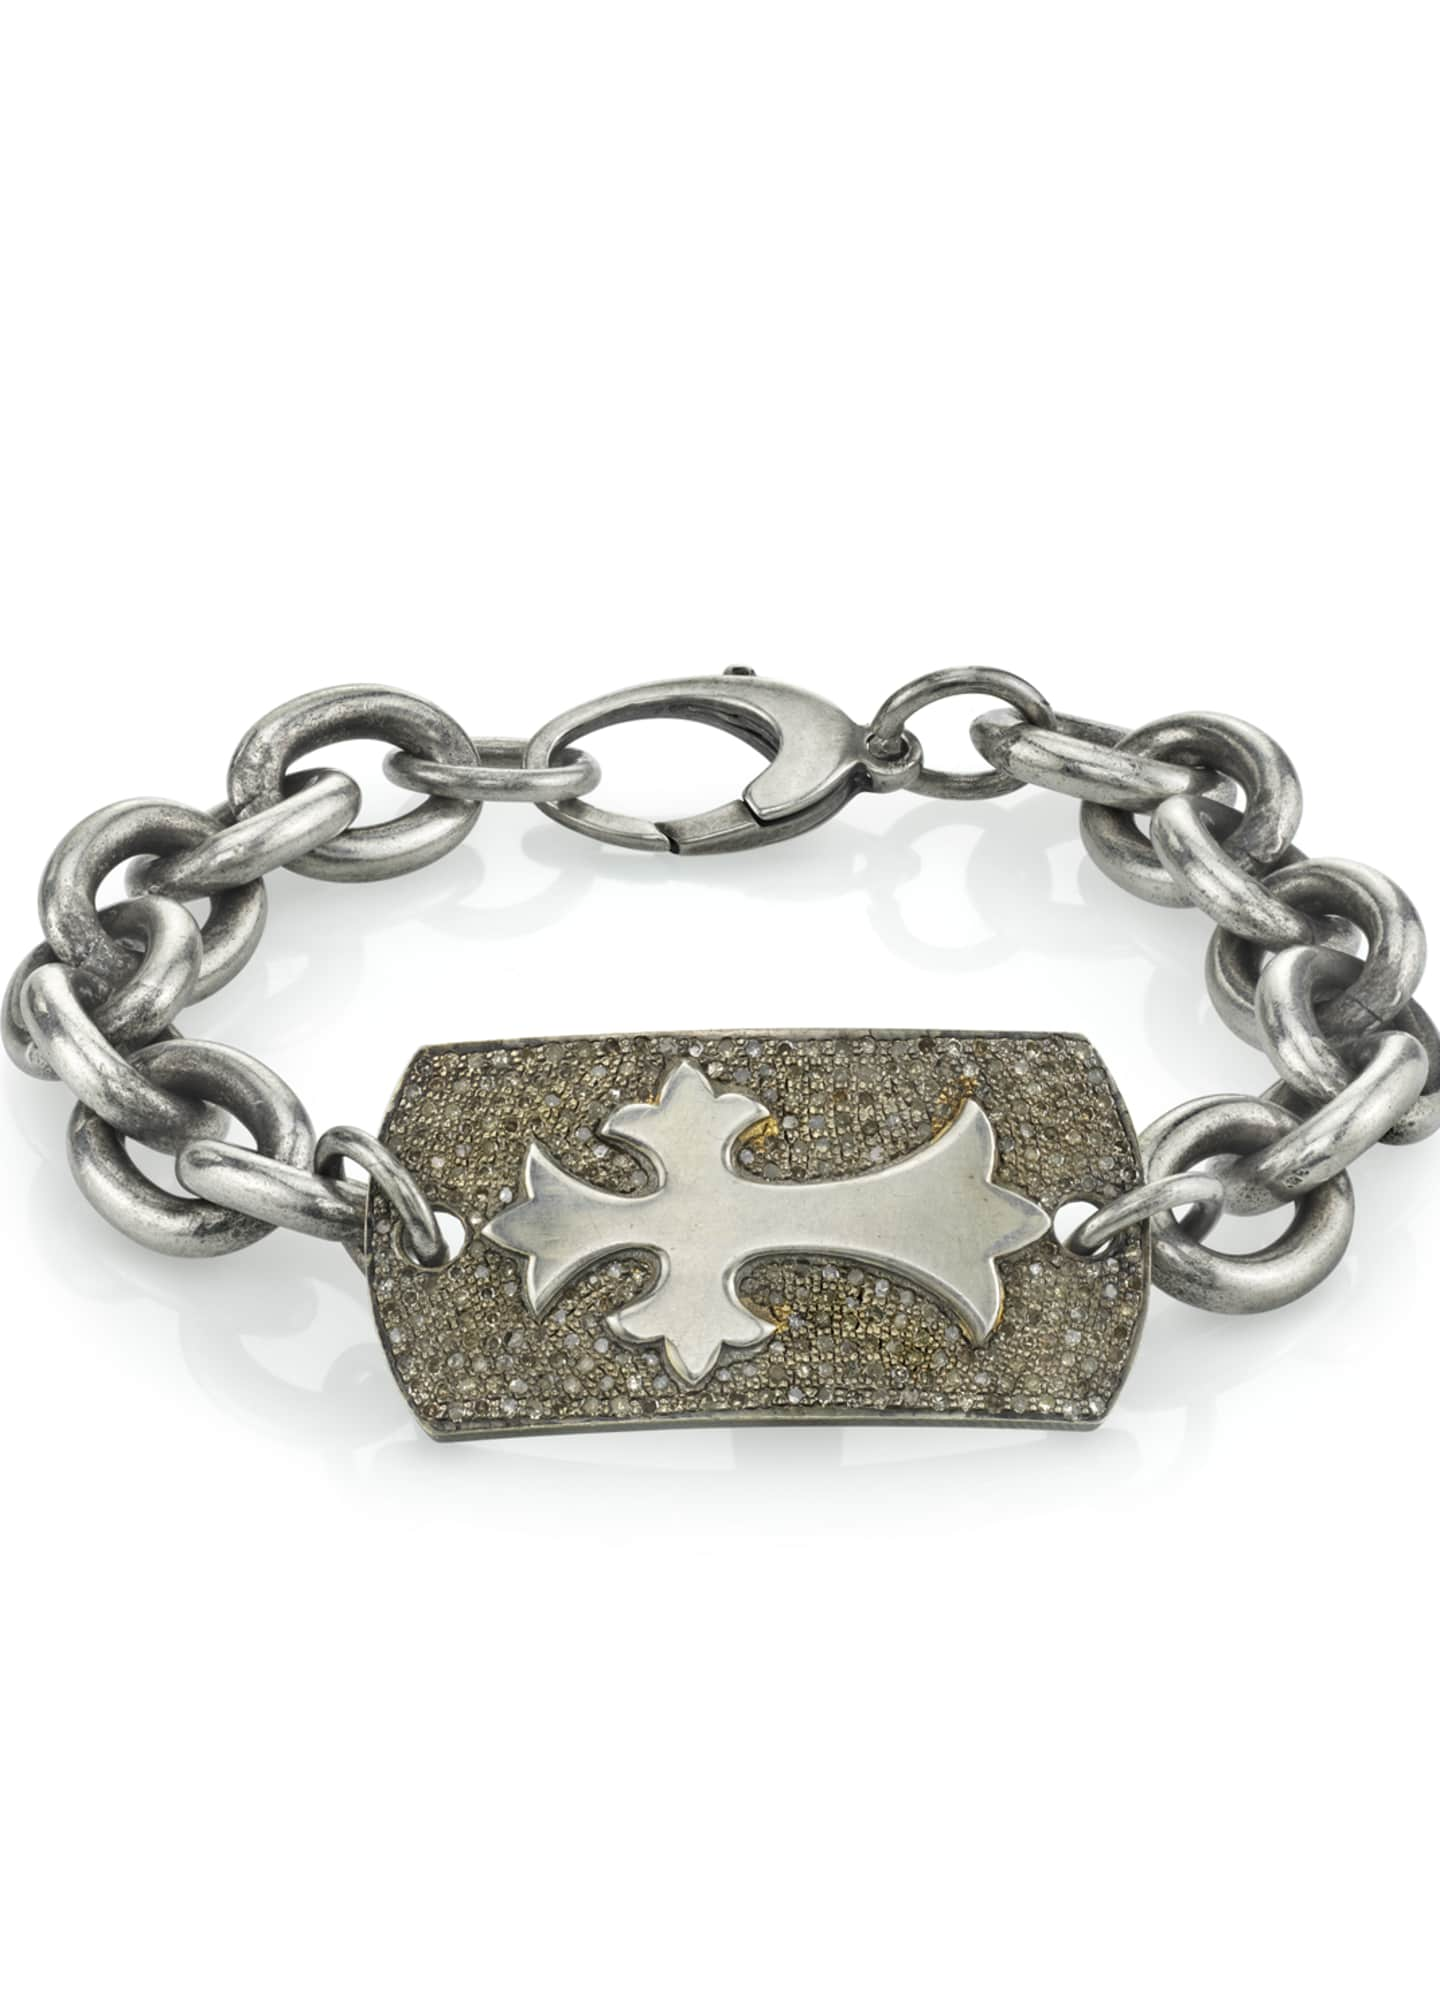 Image 1 of 1: Men's Diamond Pave Cross Bracelet, Size M